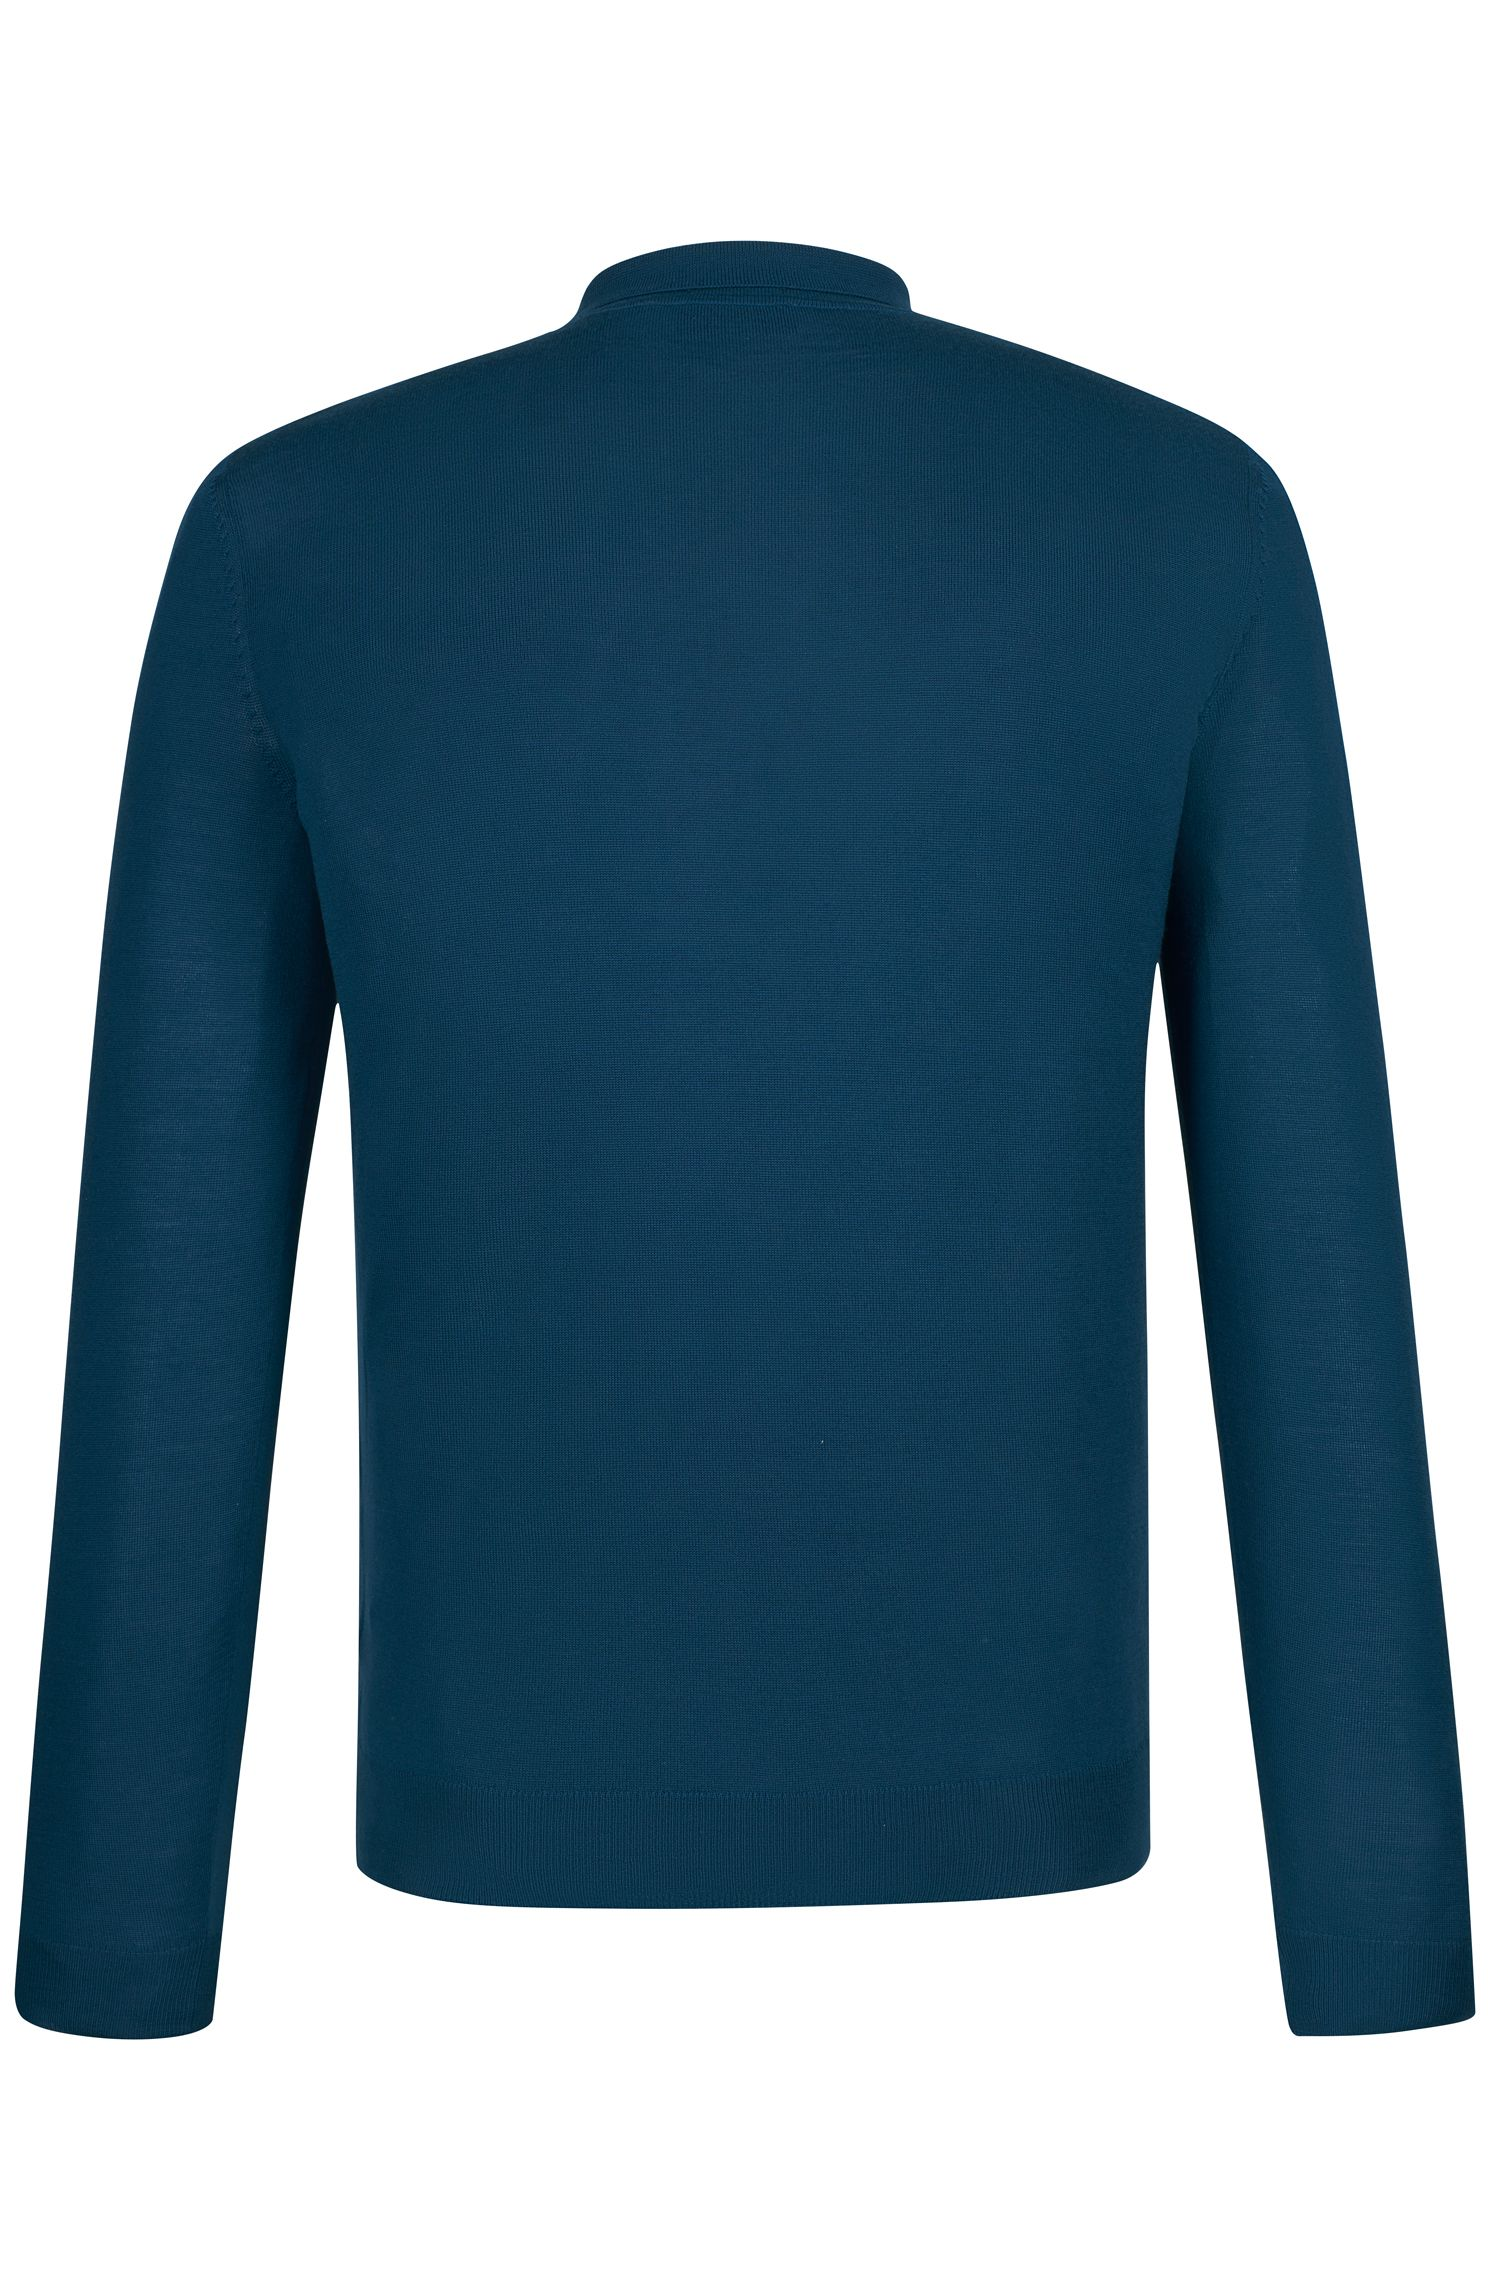 'Iden' | Slim Fit, Merino Virgin Wool Polo Sweater, Turquoise